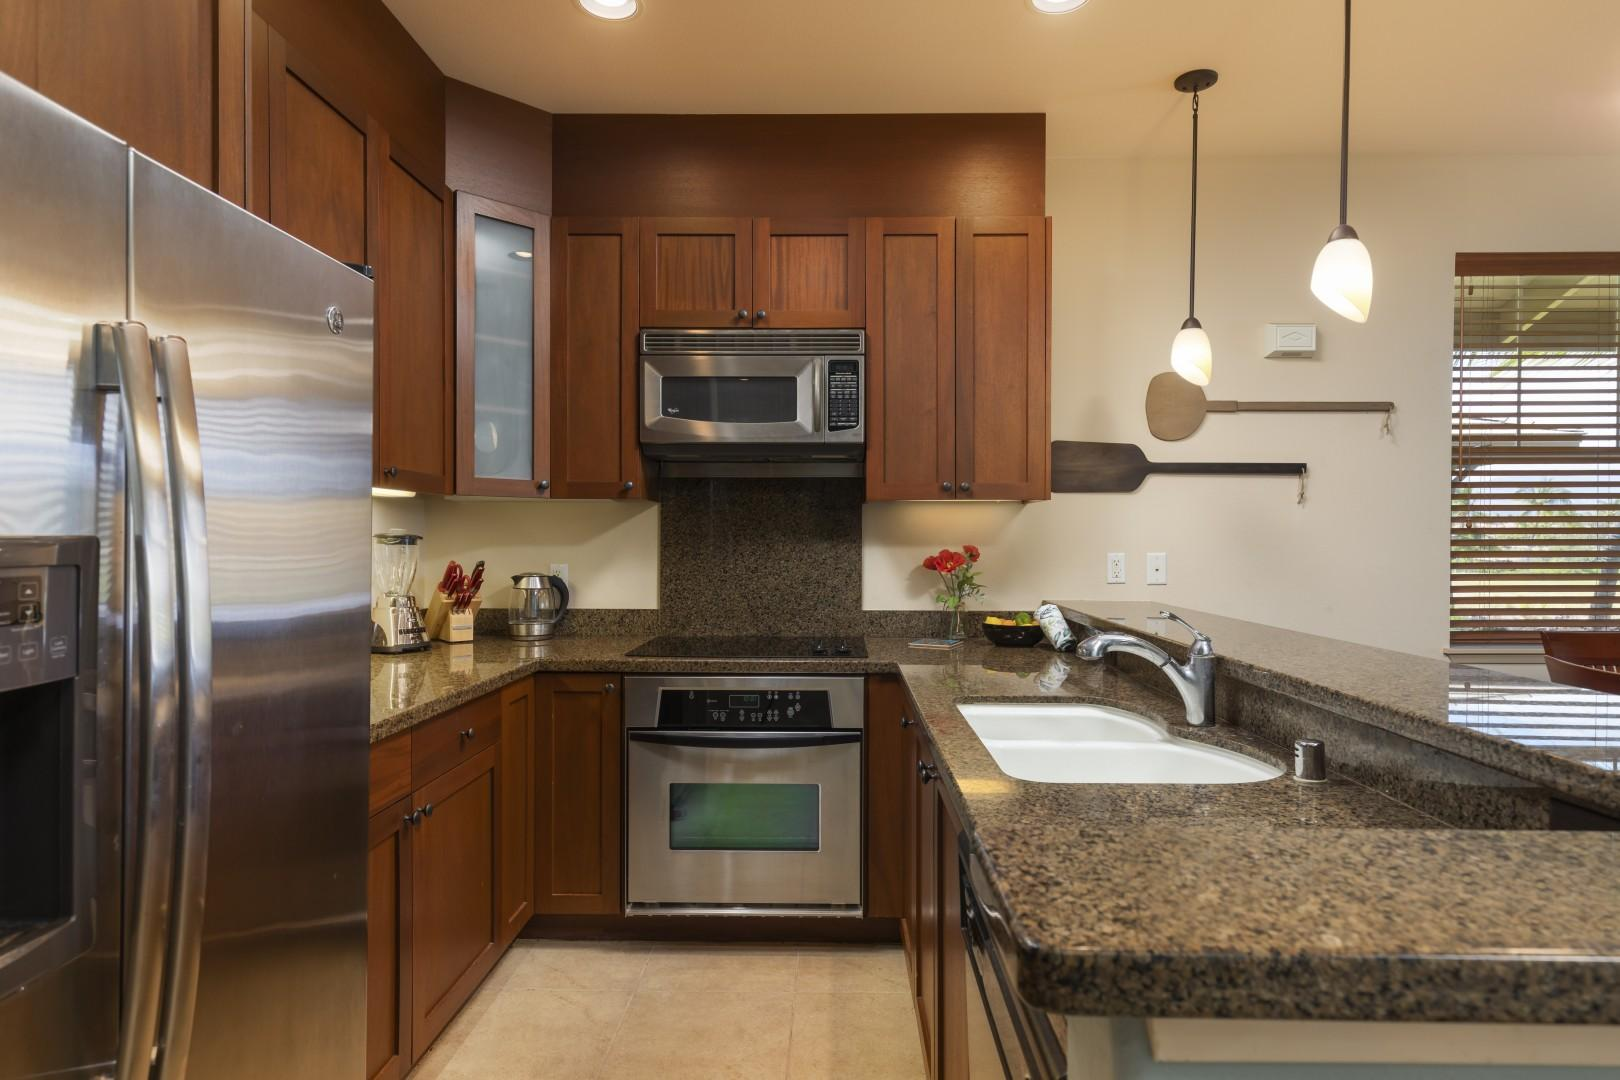 Your gormet kitchen with upscale appliances is the perfect spot to prepare meals during your stay.